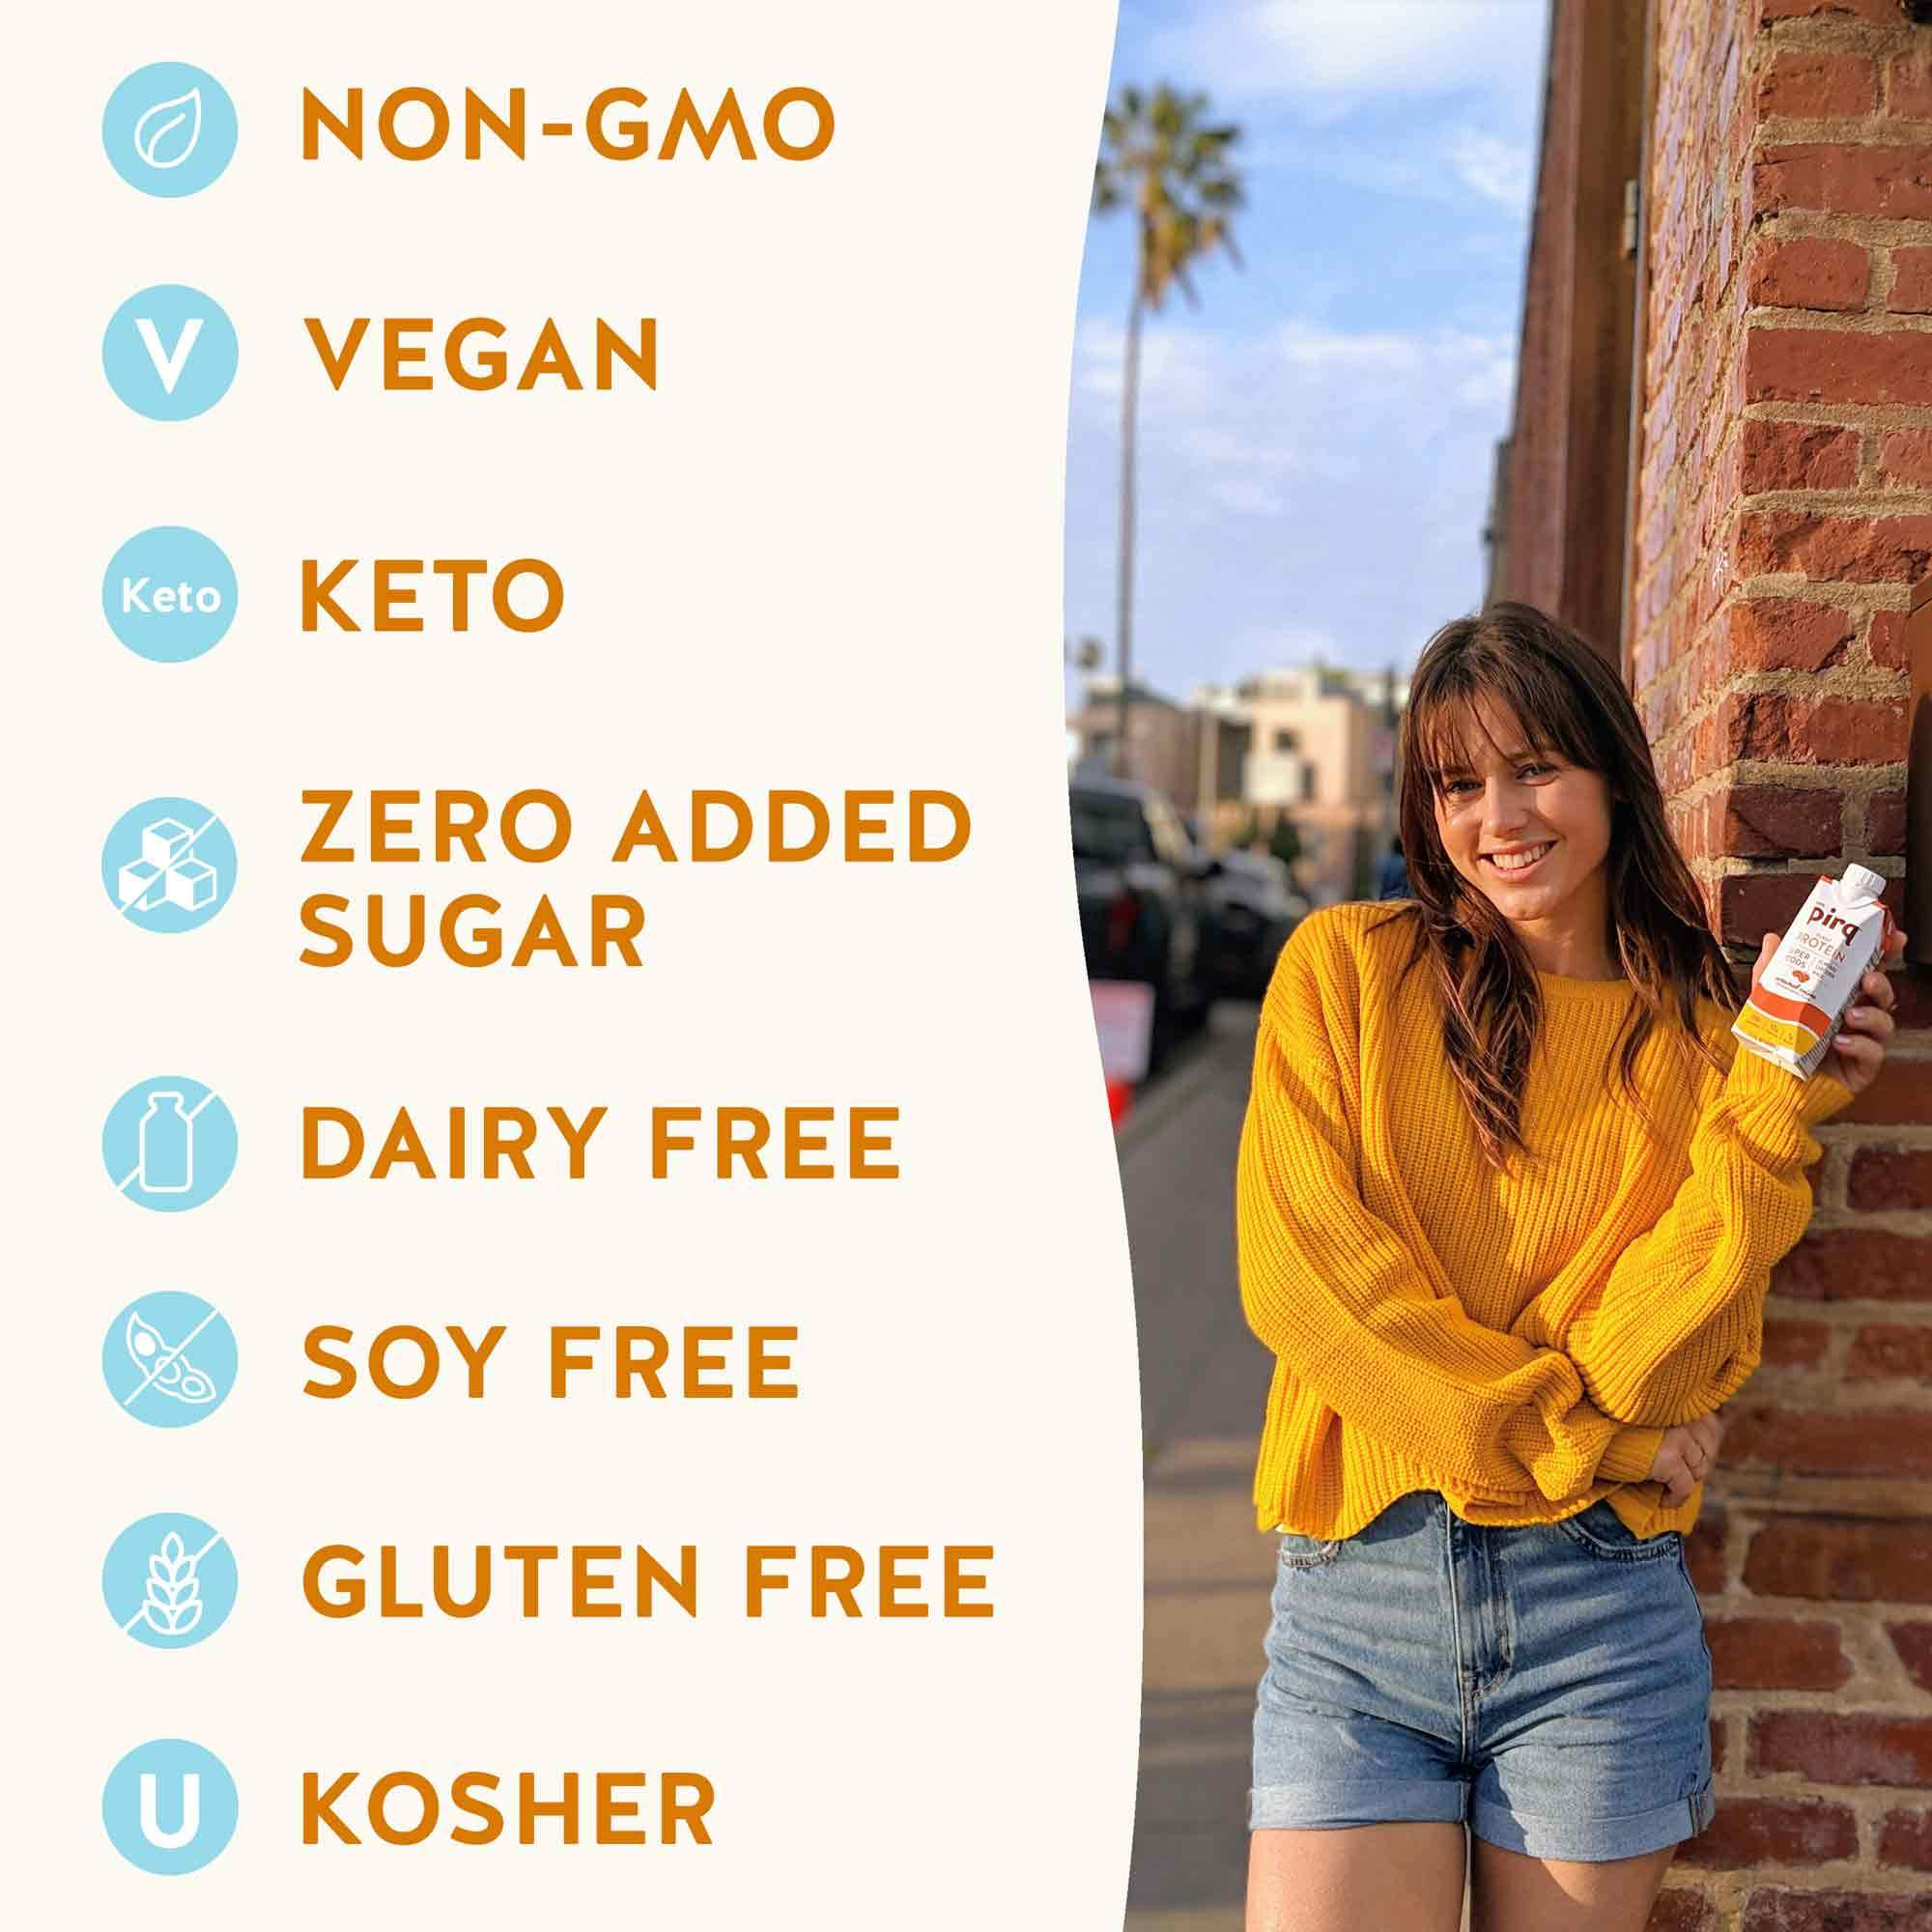 Pirq Snack Replacement Shake Attributes Non-GMO, Vegan, Kosher, Dairy Free, Soy Free, Gluten Free, Zero Added Sugar, Keto